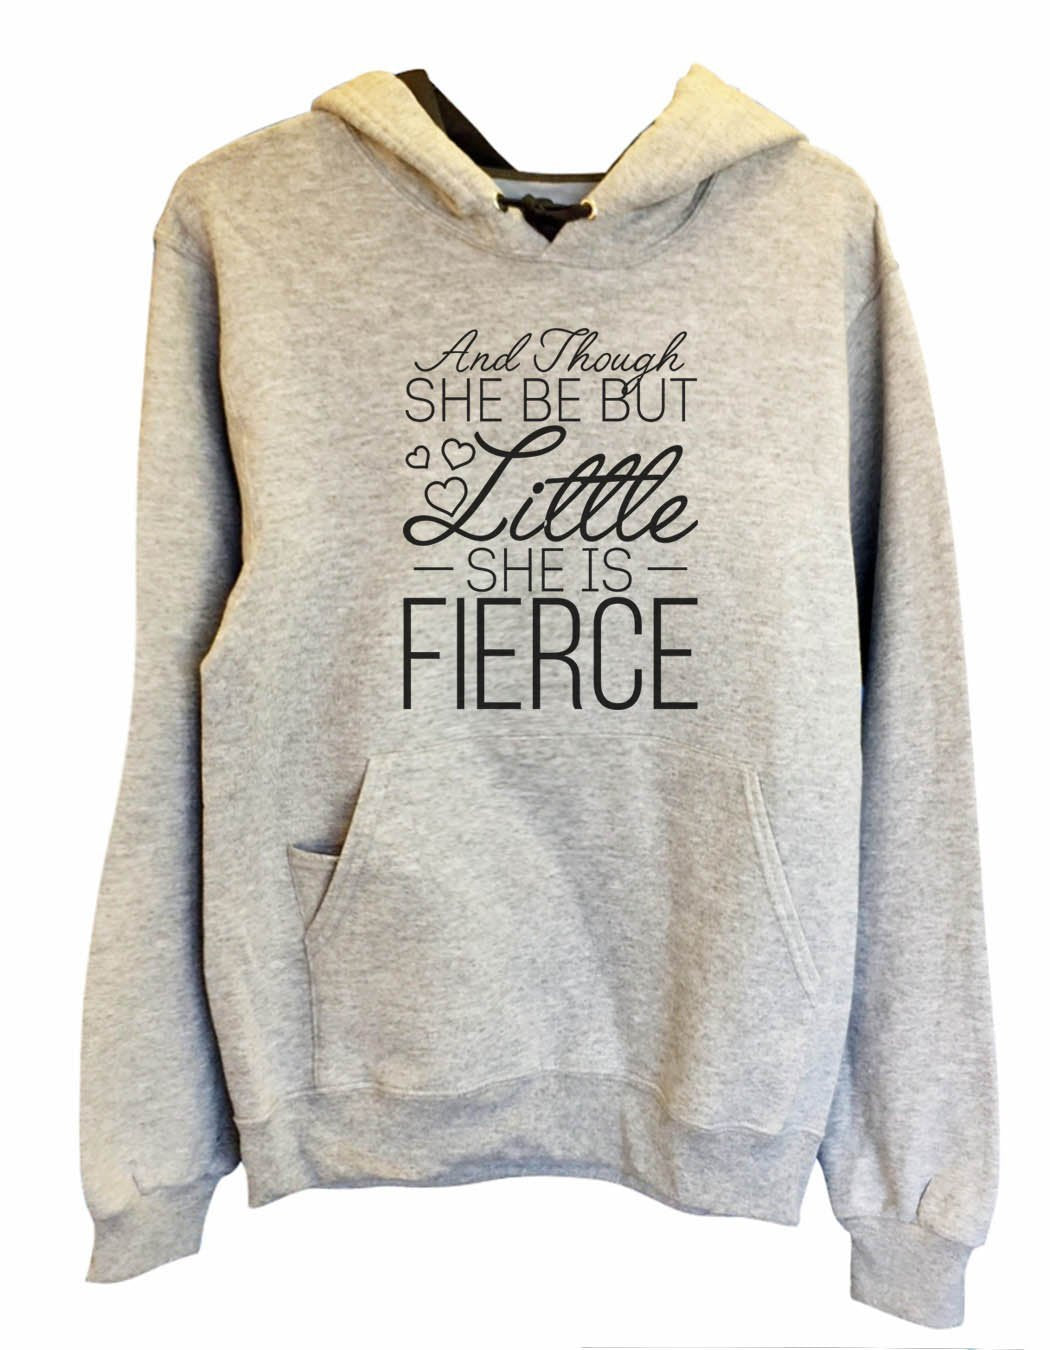 UNISEX HOODIE - And Though She Be But Little She Is Fierce - FUNNY MENS AND WOMENS HOODED SWEATSHIRTS - 2144 Funny Shirt Small / Heather Grey